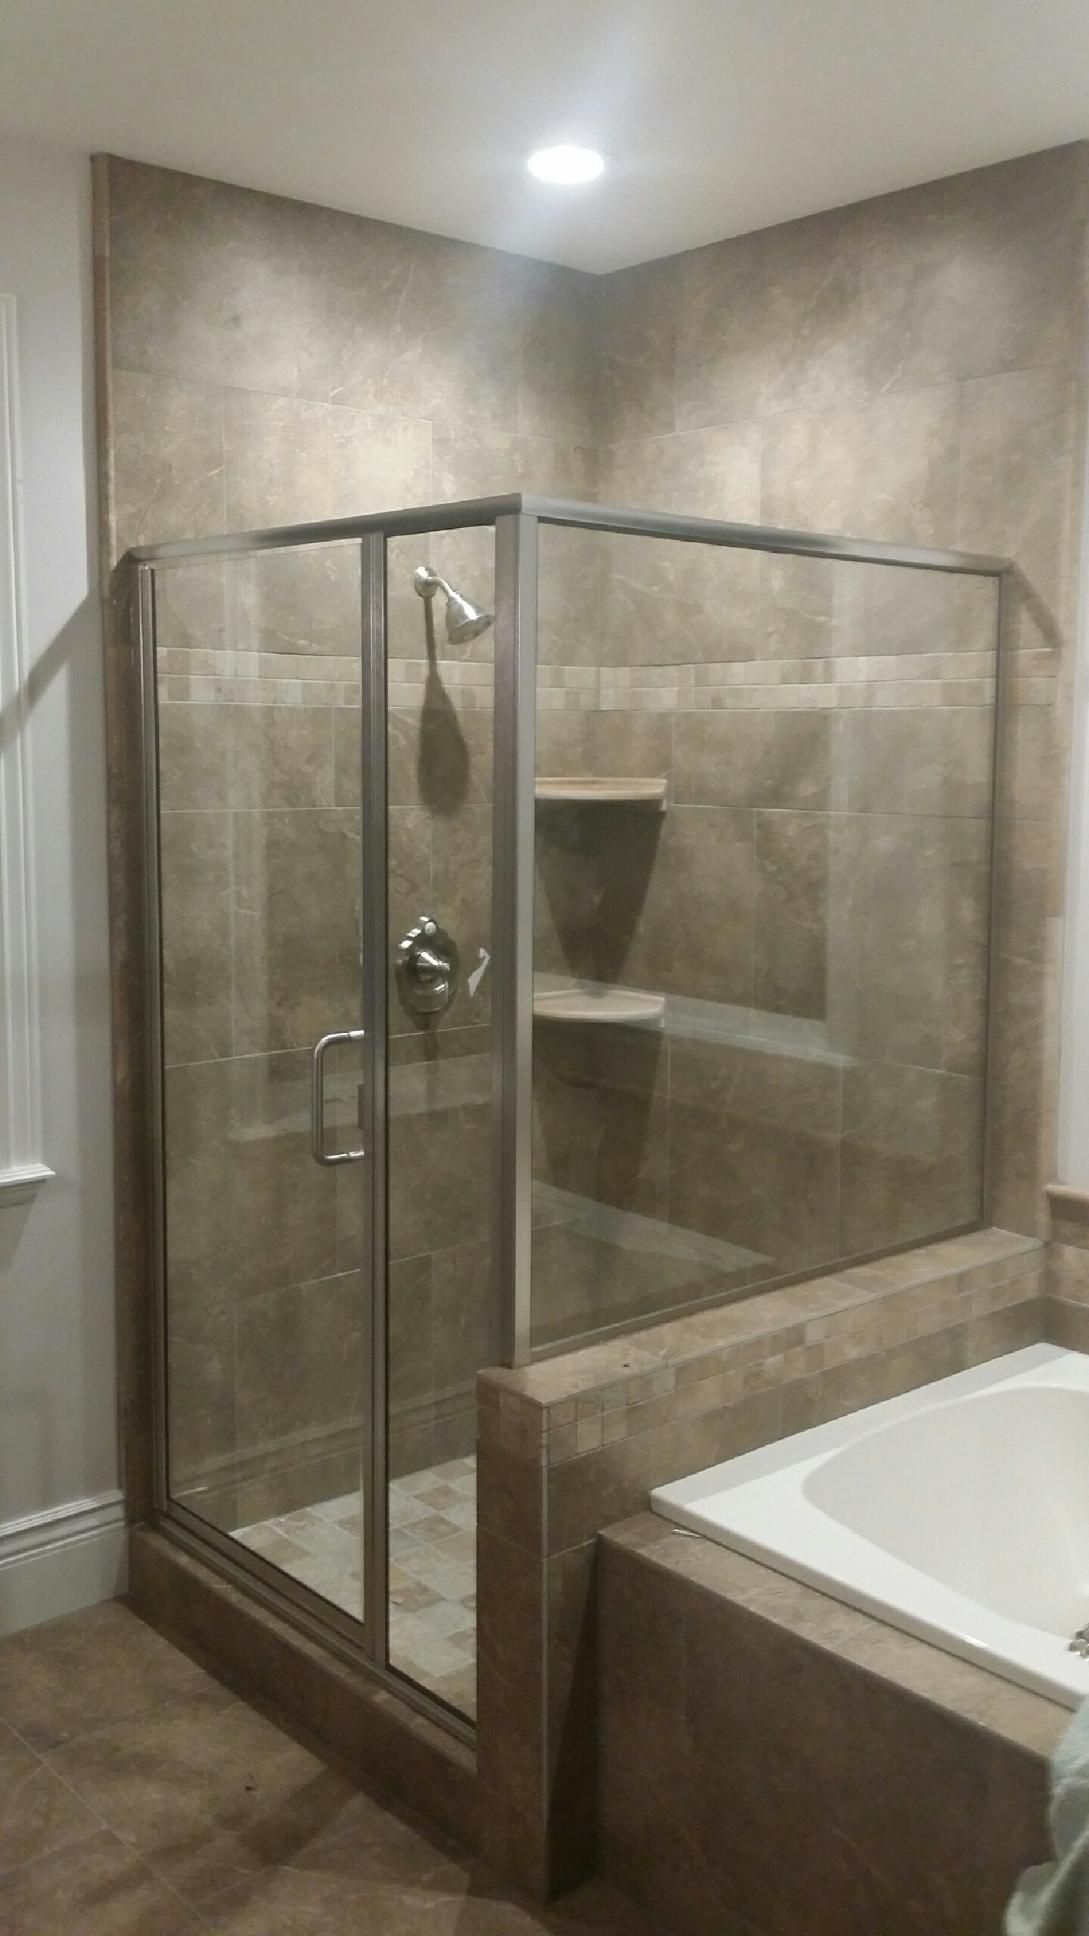 1 4 Glass Enclosure With Inline And 90 Panel Shower Model Cdmp I 90 Picture Provided By Arizona Shower Doo Shower Doors Glass Enclosure Shower Enclosure